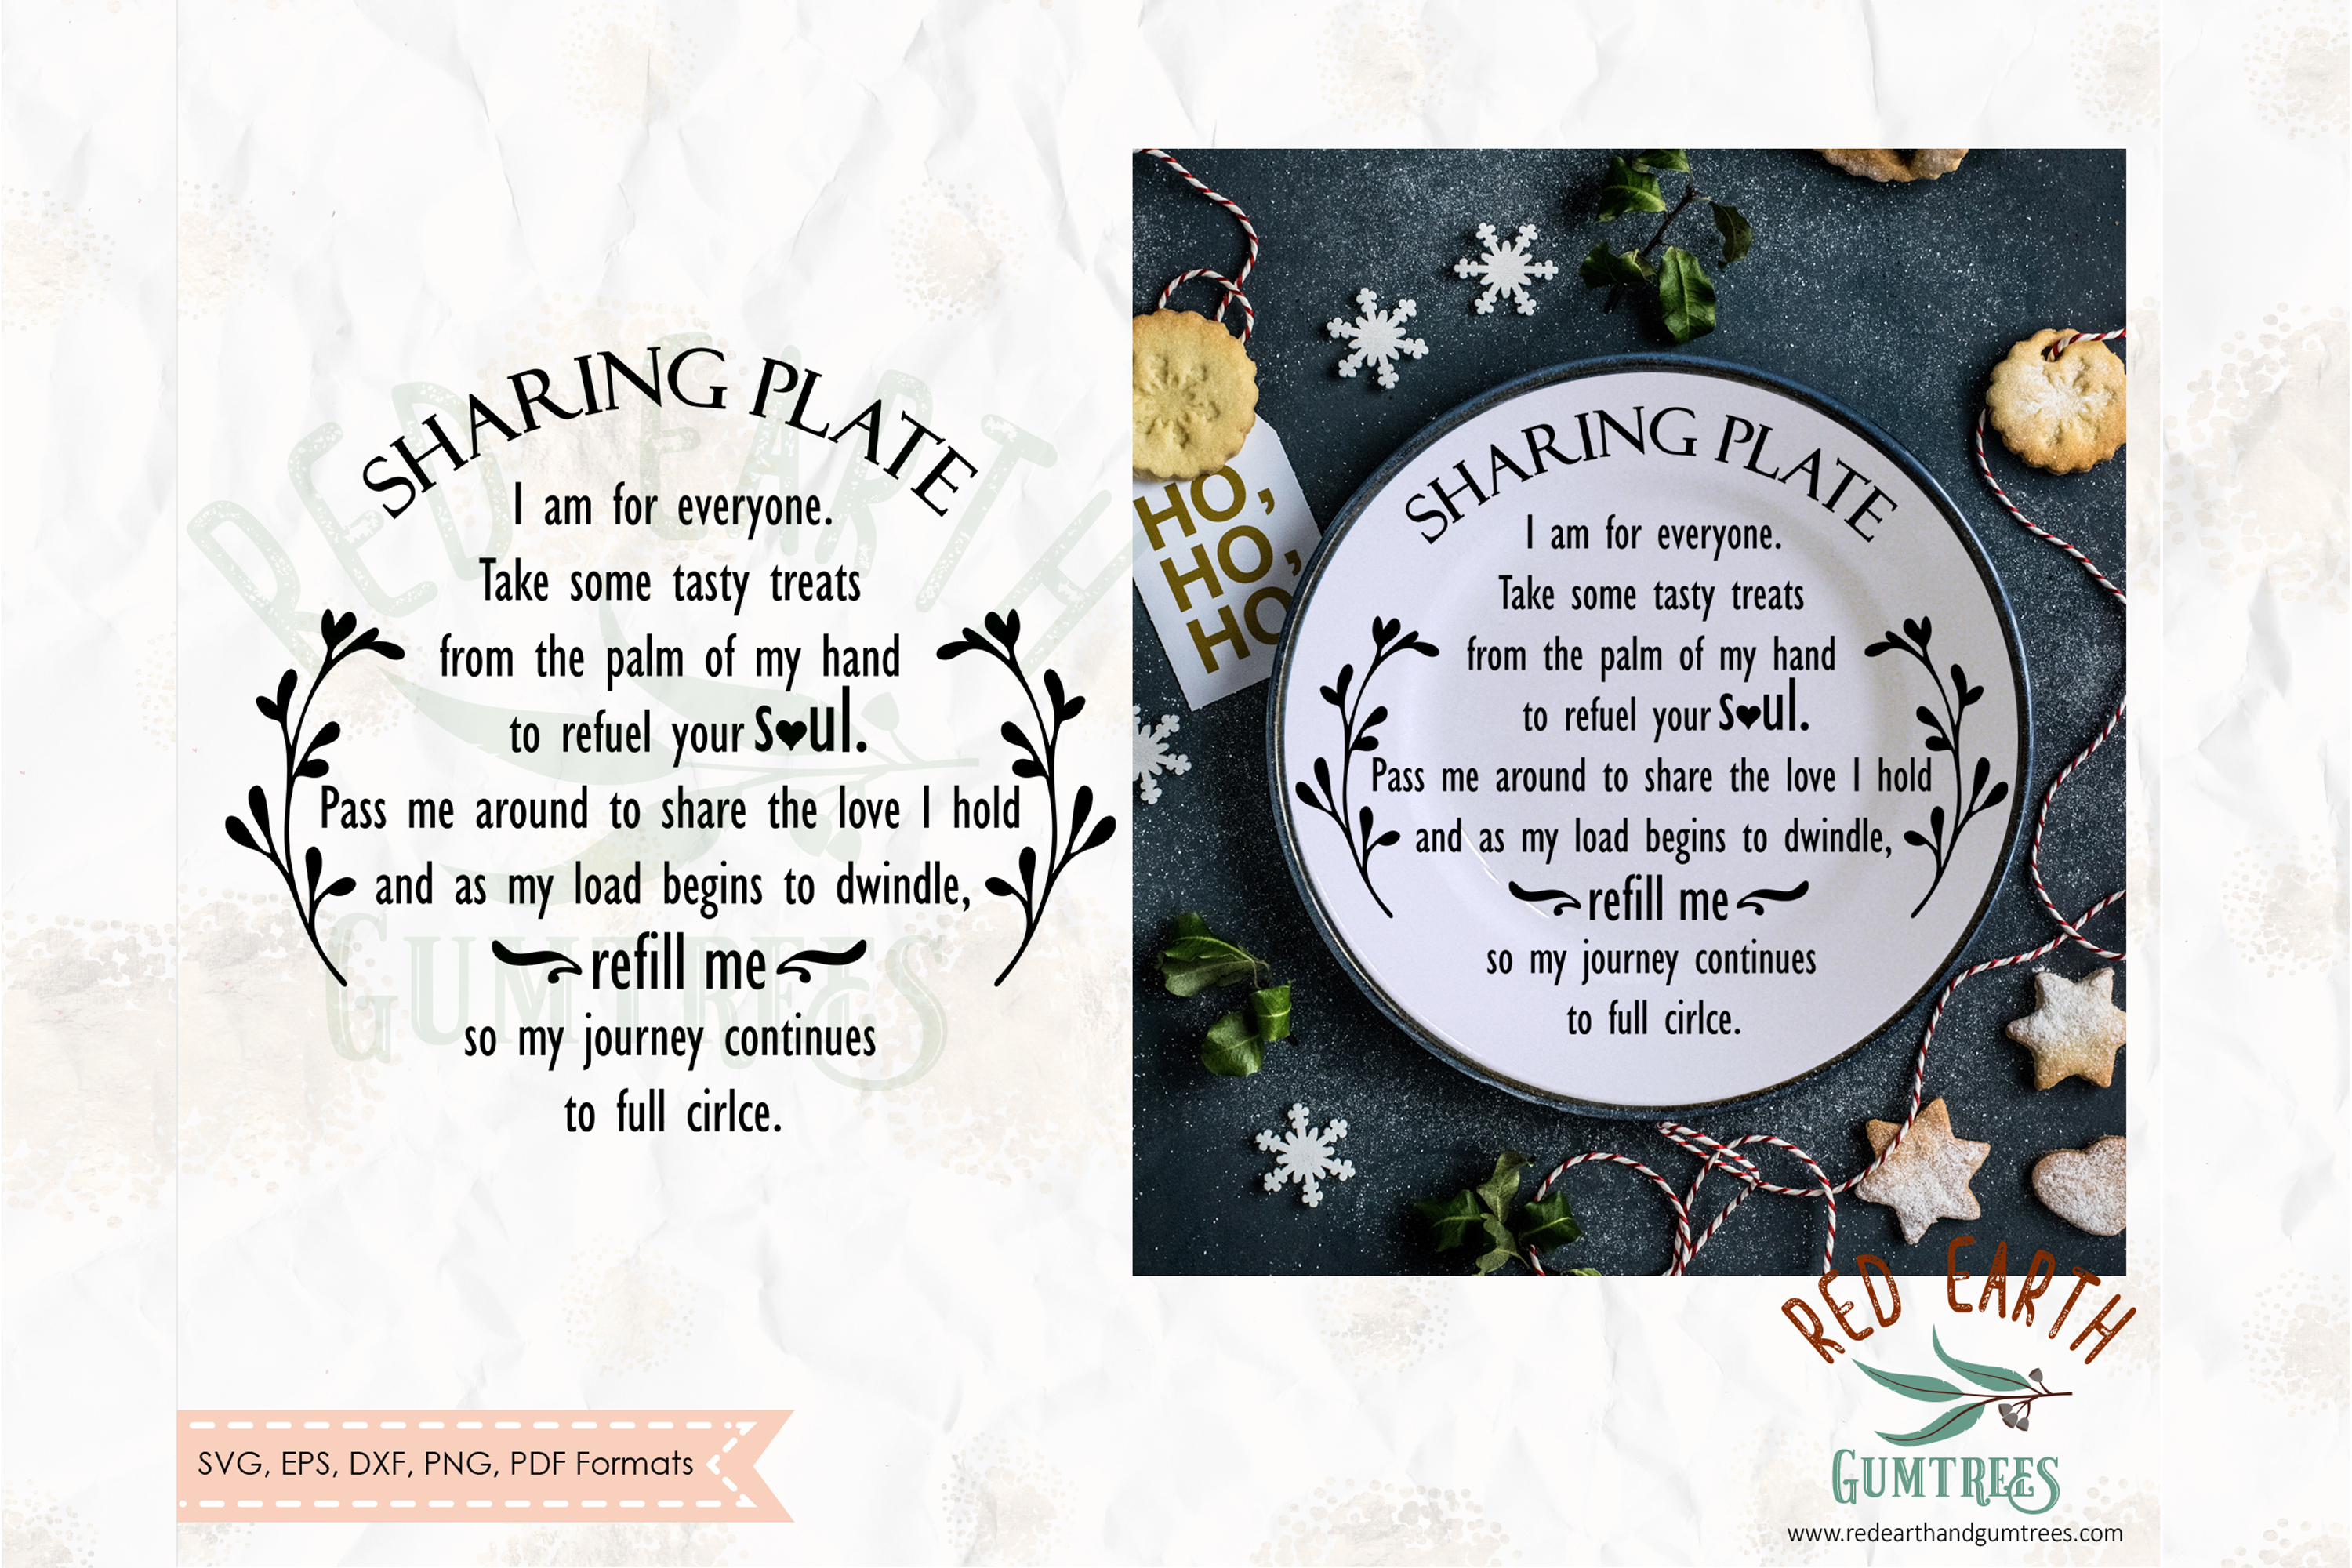 Download Free Christmas Sharing Plate Svg Giving Plate Graphic By Redearth And for Cricut Explore, Silhouette and other cutting machines.